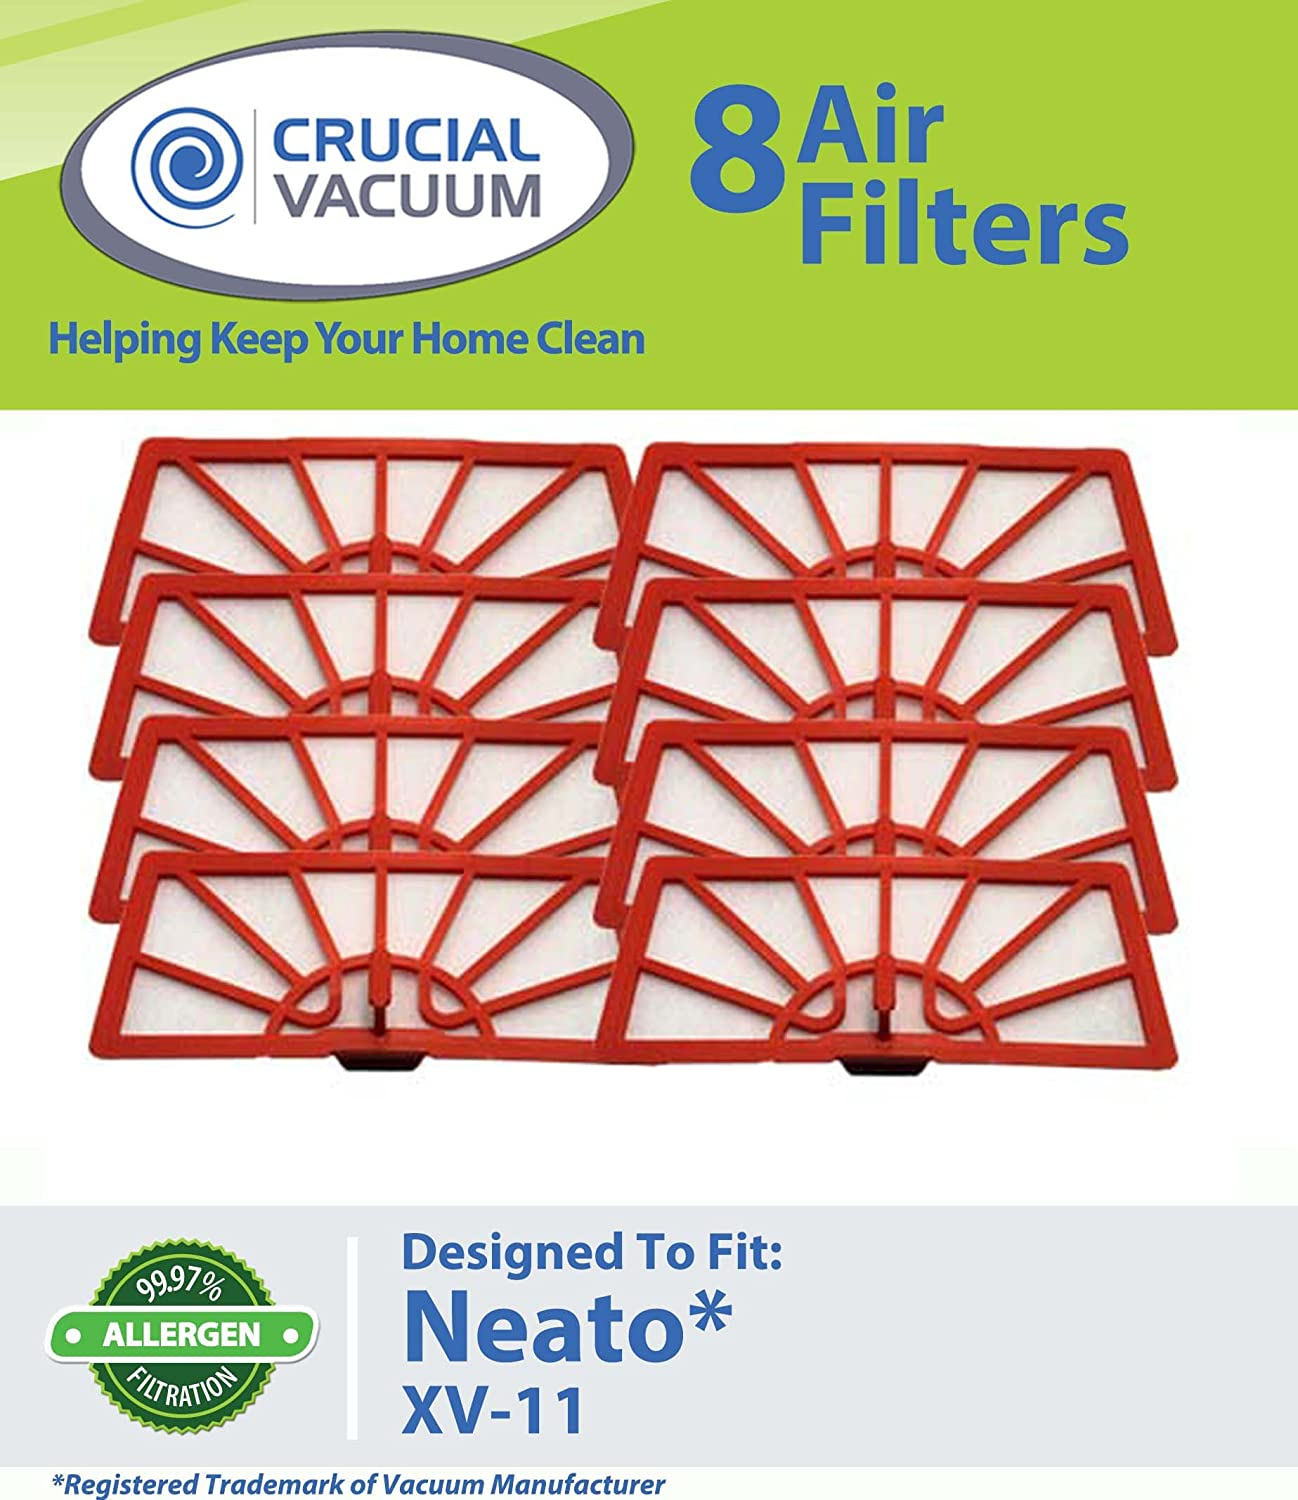 Crucial Vacuum 8 Neato XV-11 Air Filters Fits Neato XV-11 XV11 All Floor Robotic Vacuum Cleaner System; Compare to Neato Filter Part # 945-0004 at Sears.com